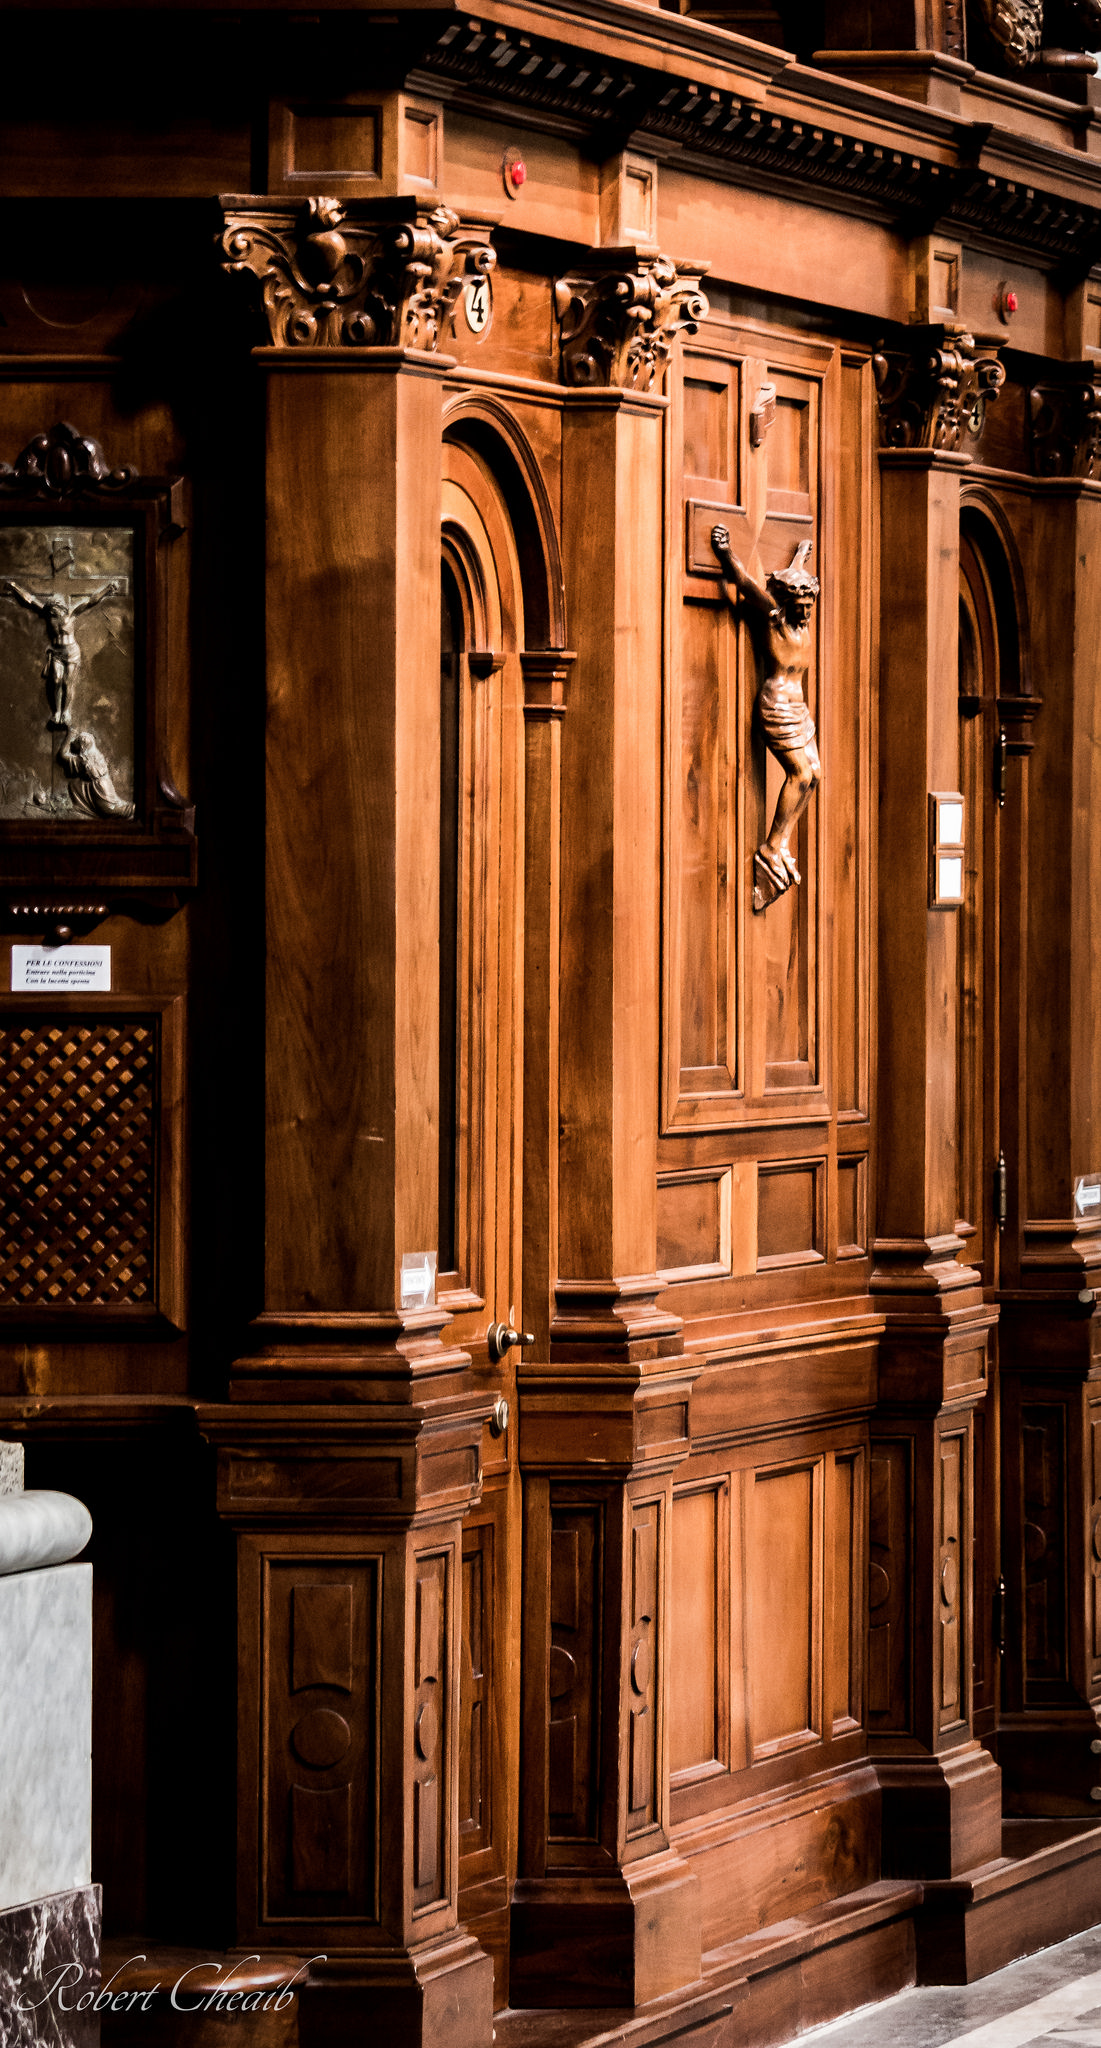 Confessional and Penitence